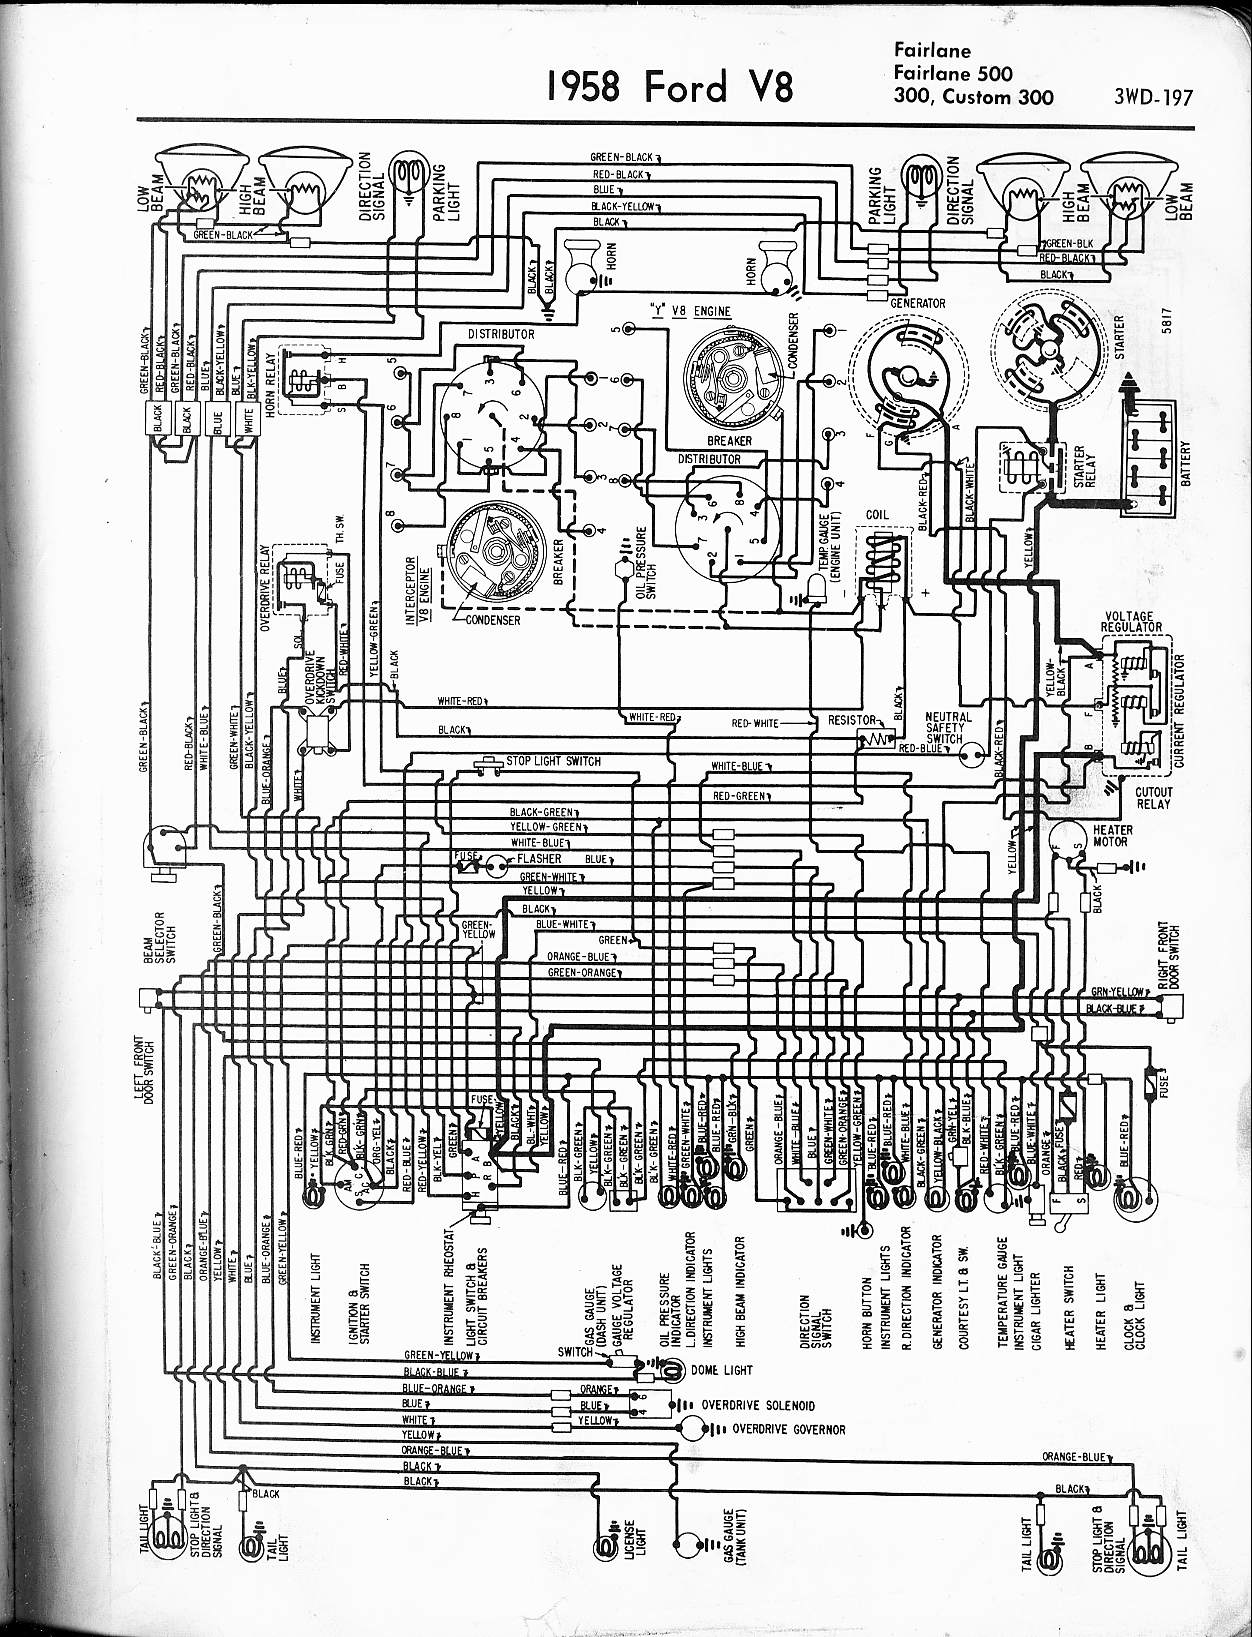 Surprising 1966 Ford Thunderbird Wiring Diagram Wiring Diagram Database Wiring 101 Mecadwellnesstrialsorg